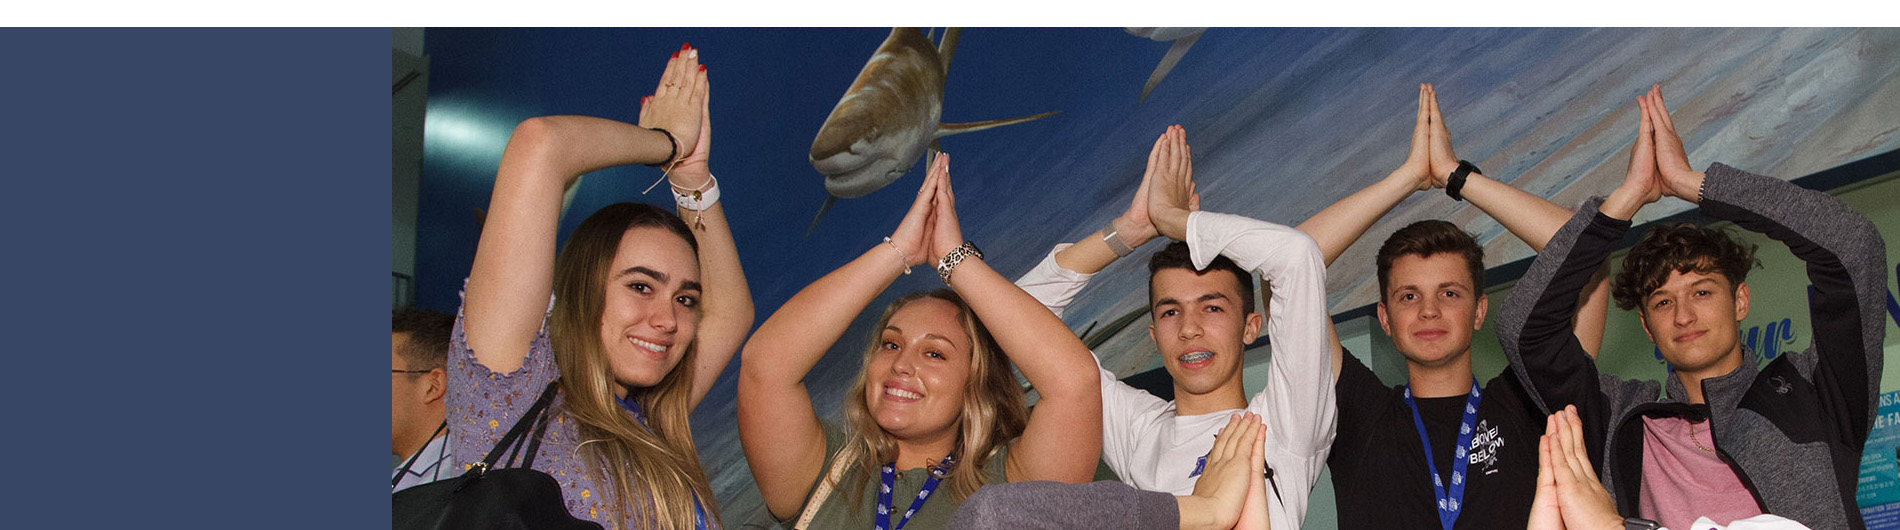 students with fins up